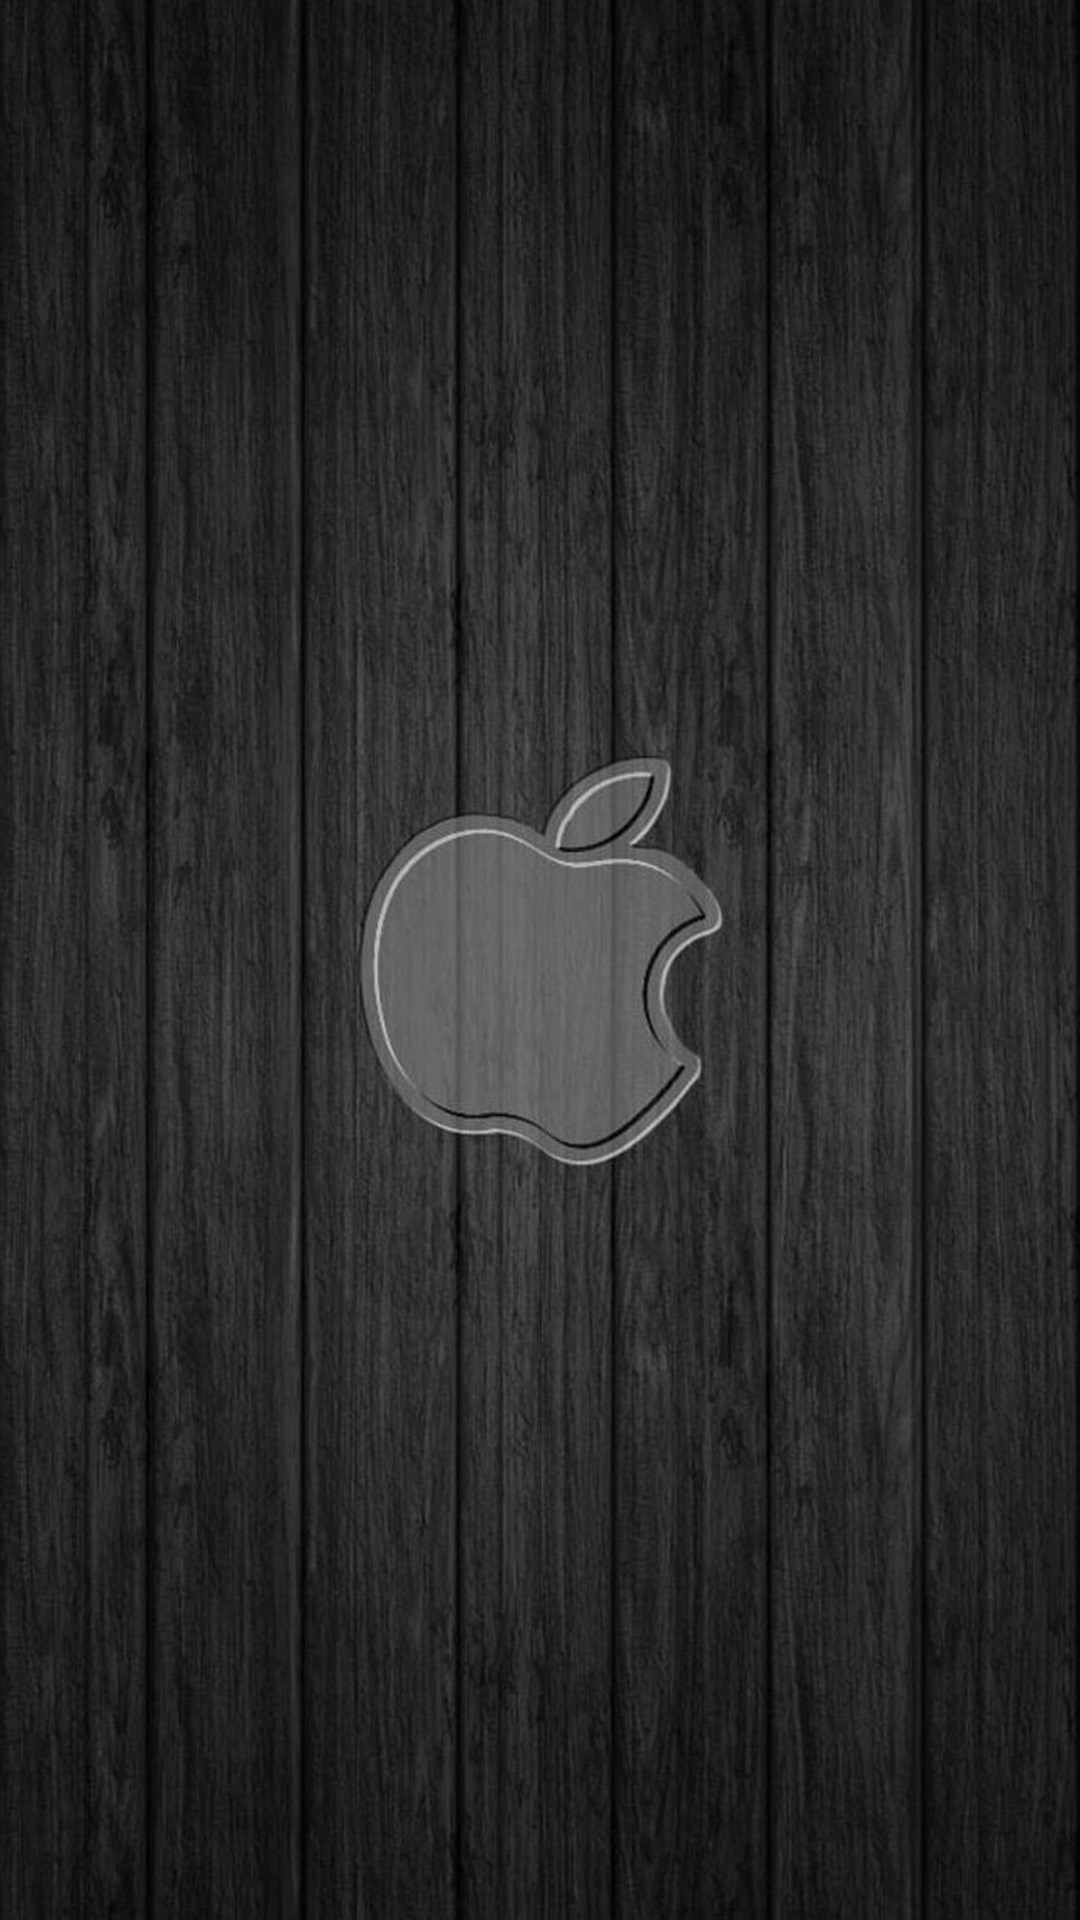 1080x1920 Apple Logo LG G2 Wallpapers HD 90, LG G2 Wallpapers, LG .